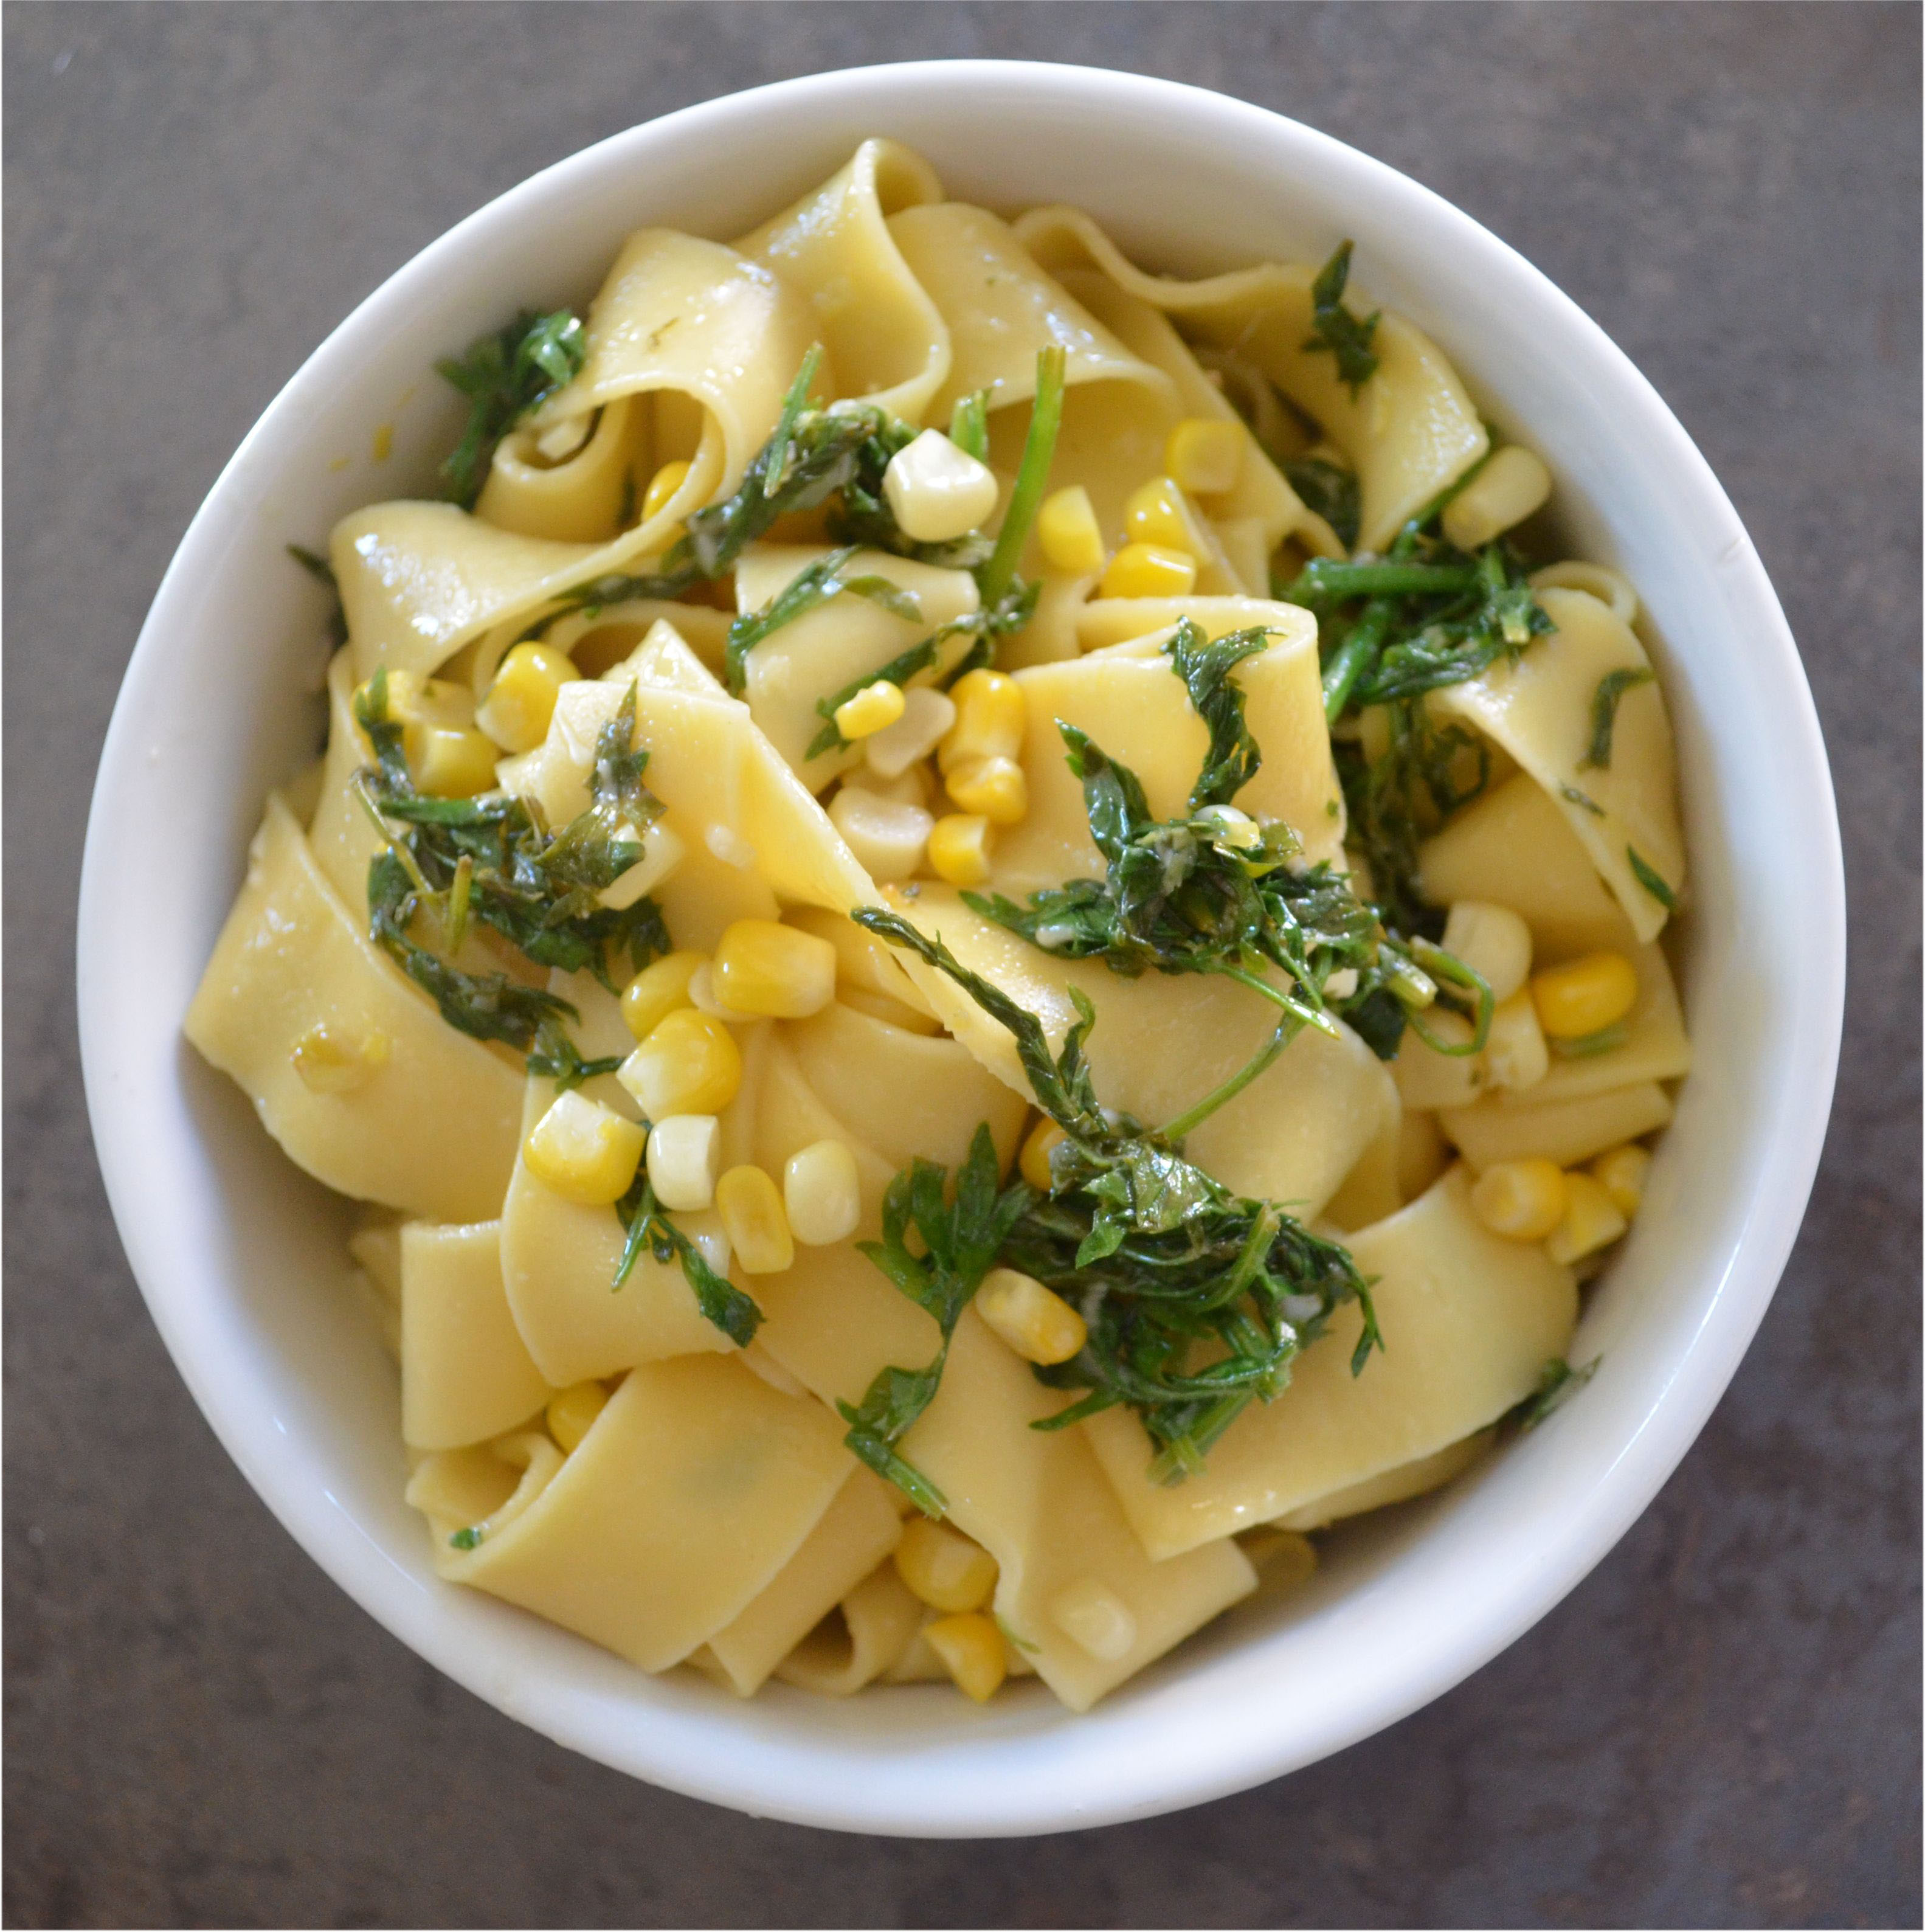 pappardelle pasta with carrot greens